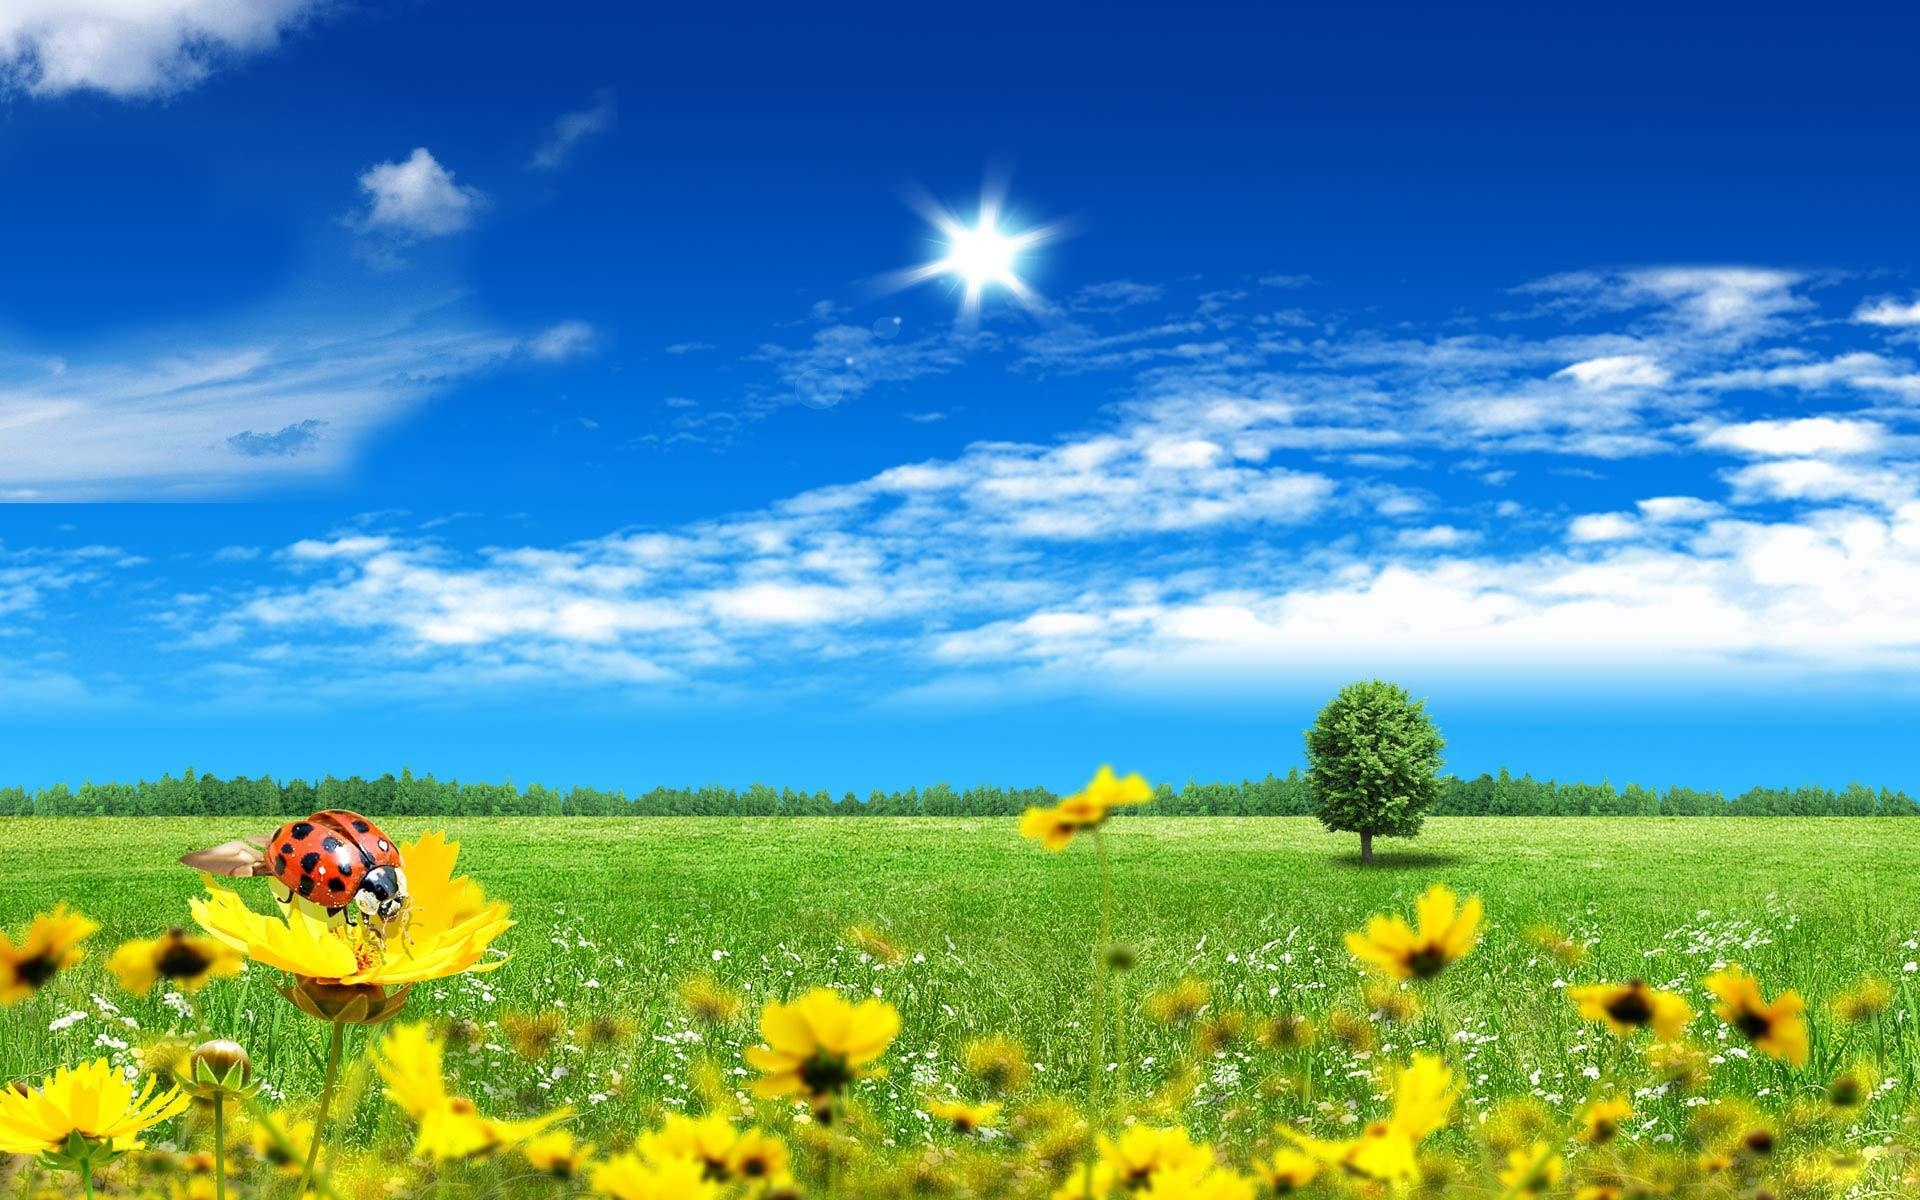 16412 download wallpaper Landscape, Flowers, Ladybugs screensavers and pictures for free